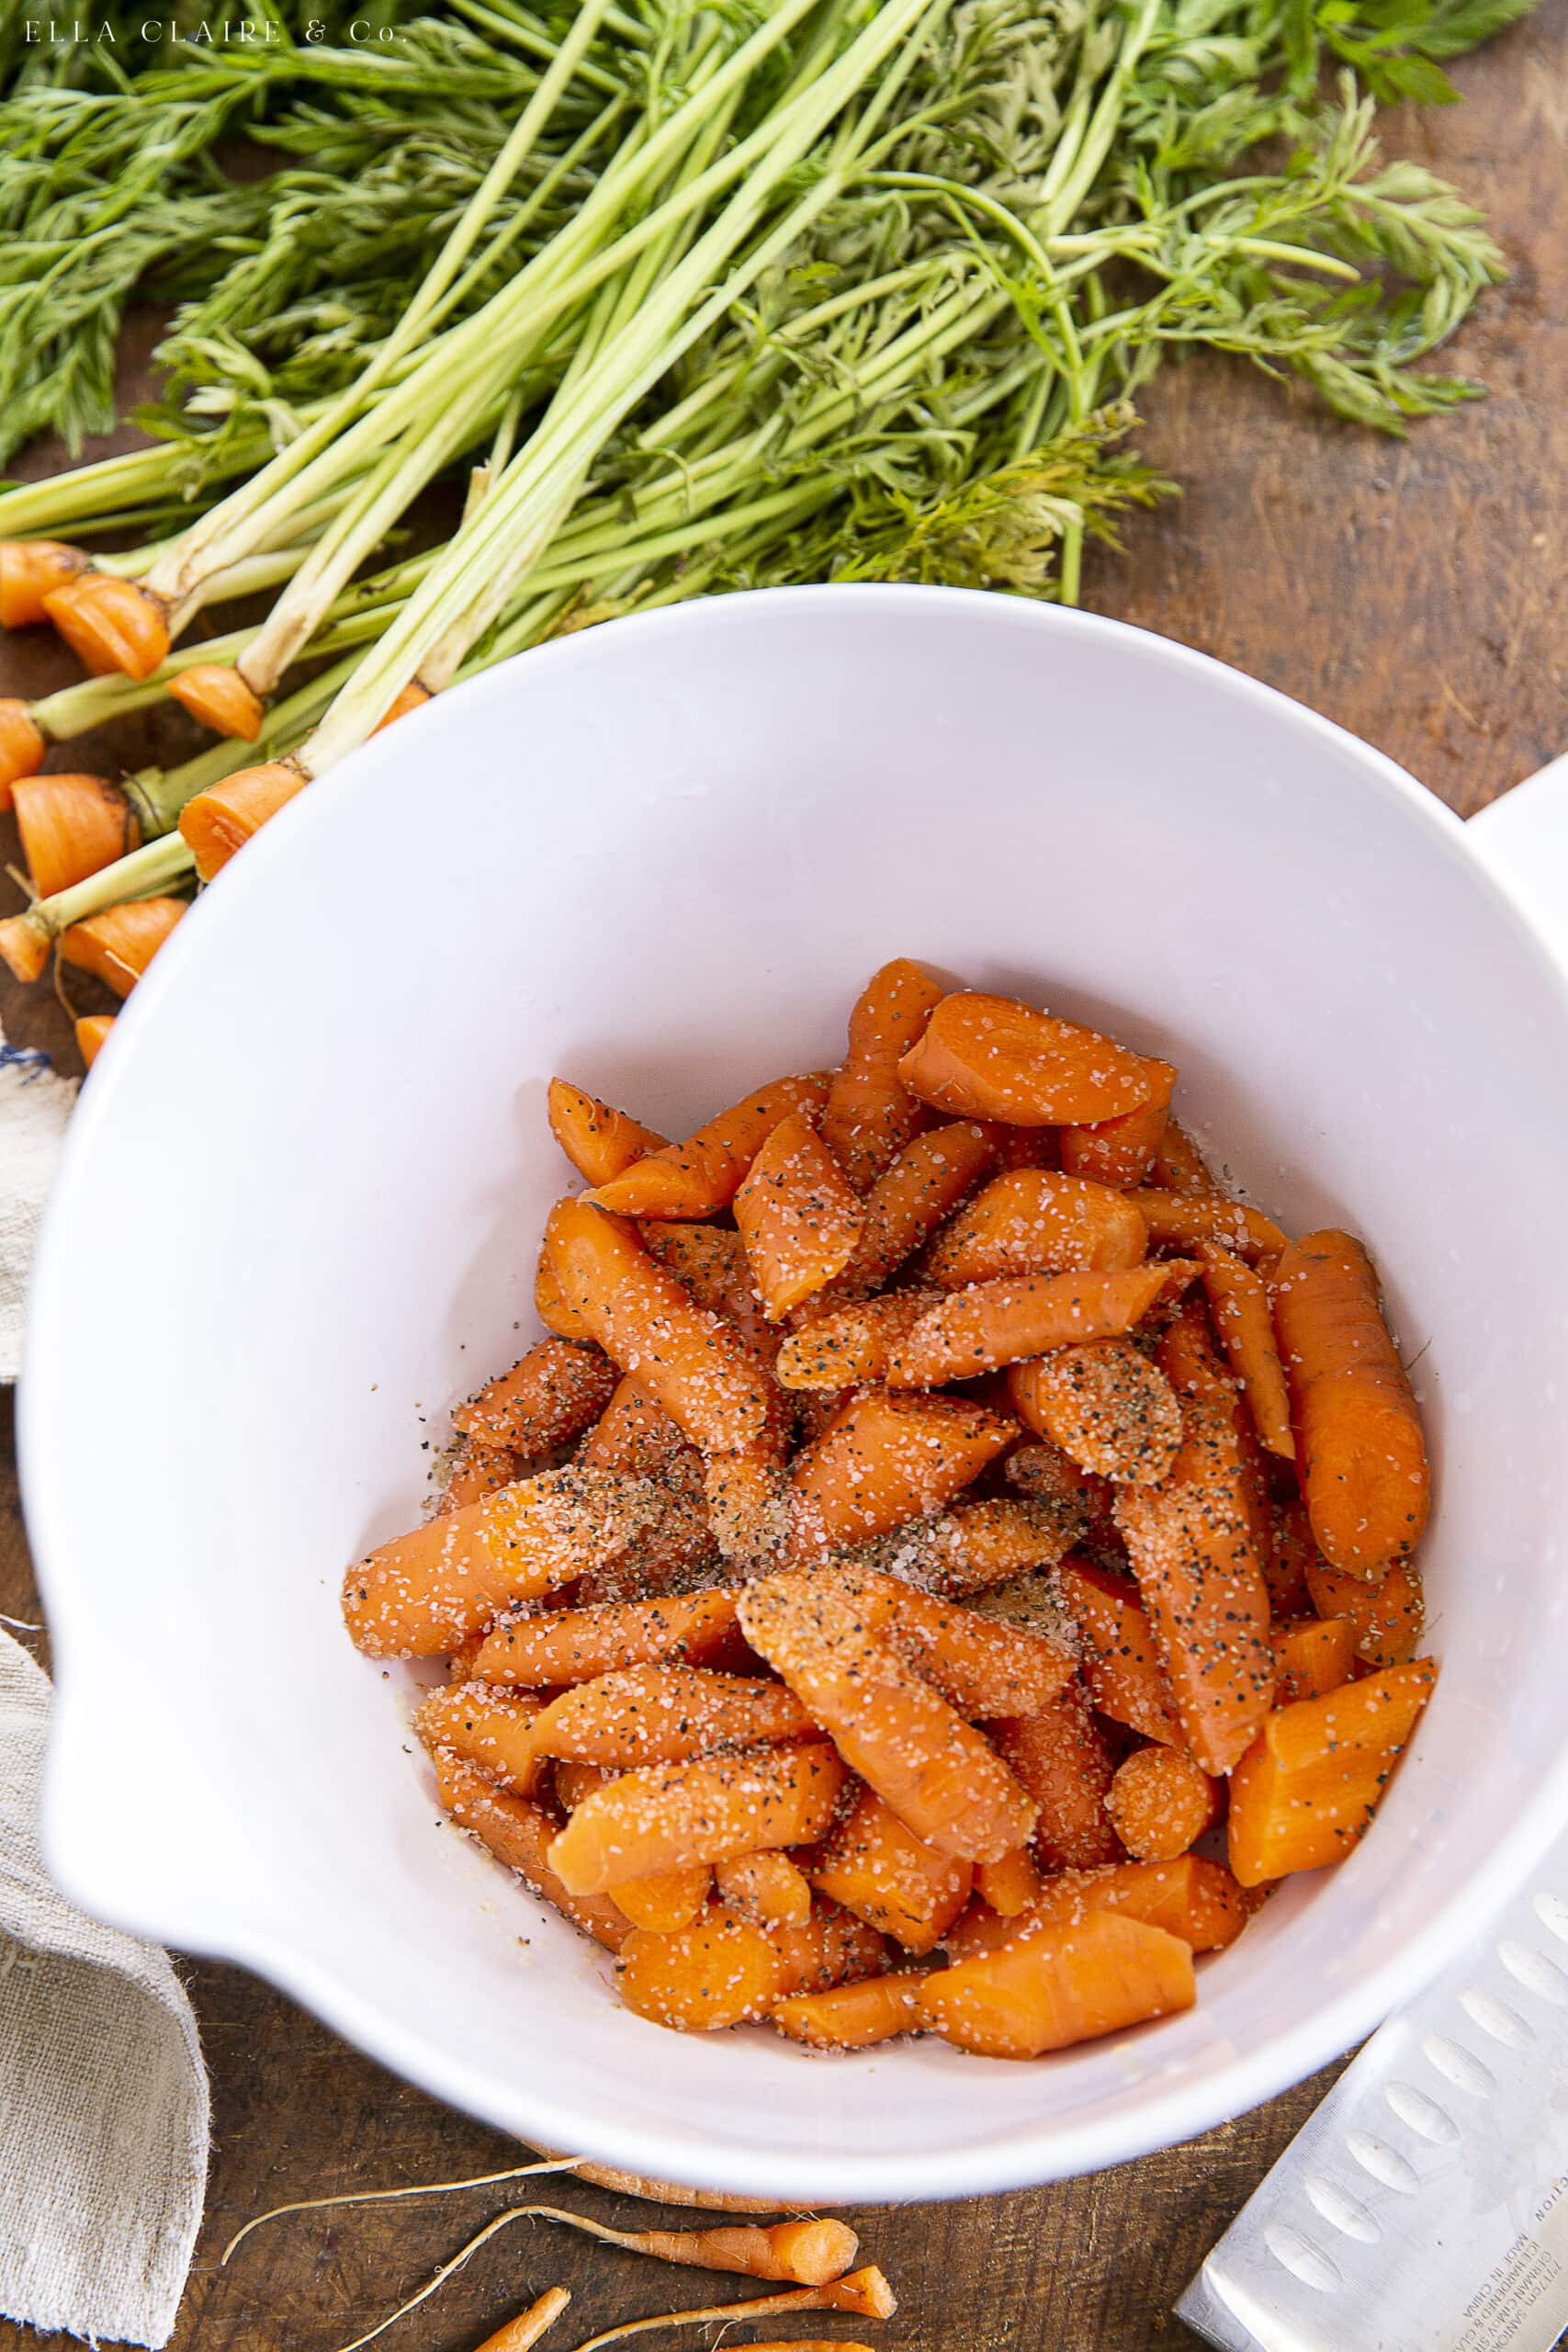 Mixing carrots with salt pepper and oil